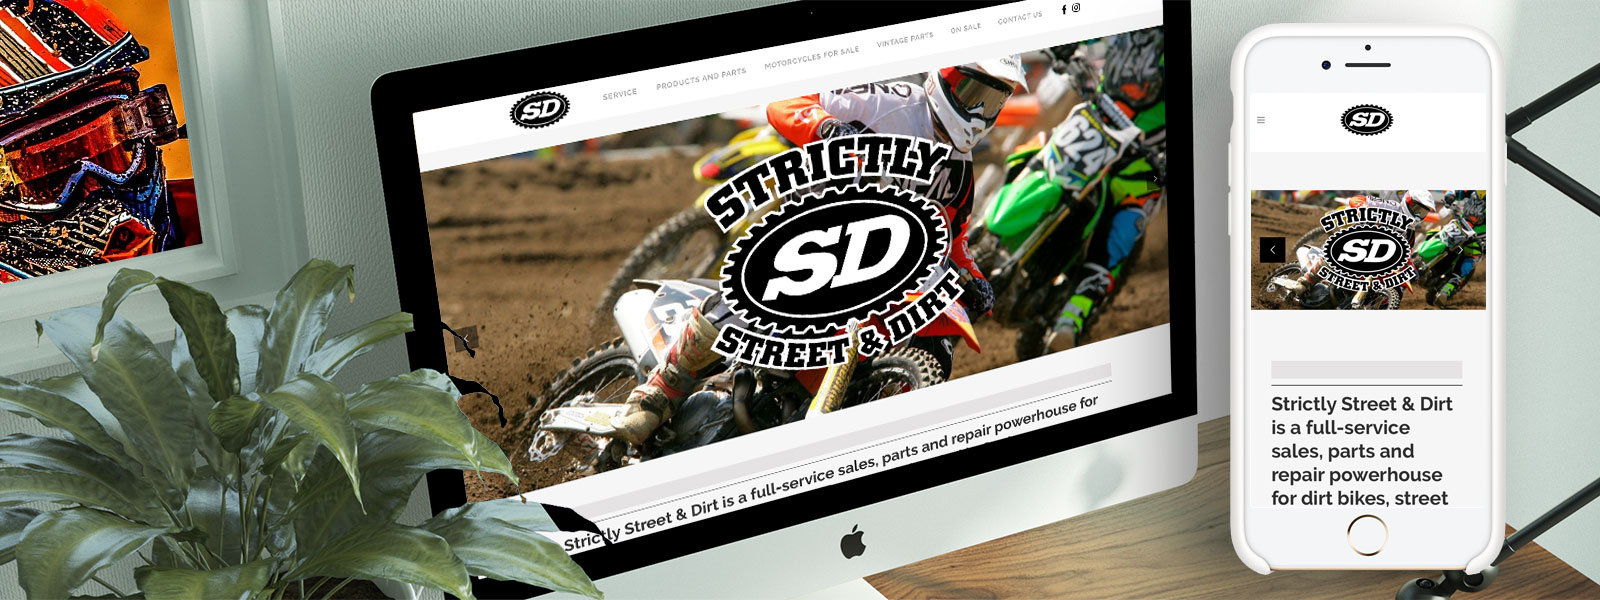 Strictly Dirt Website